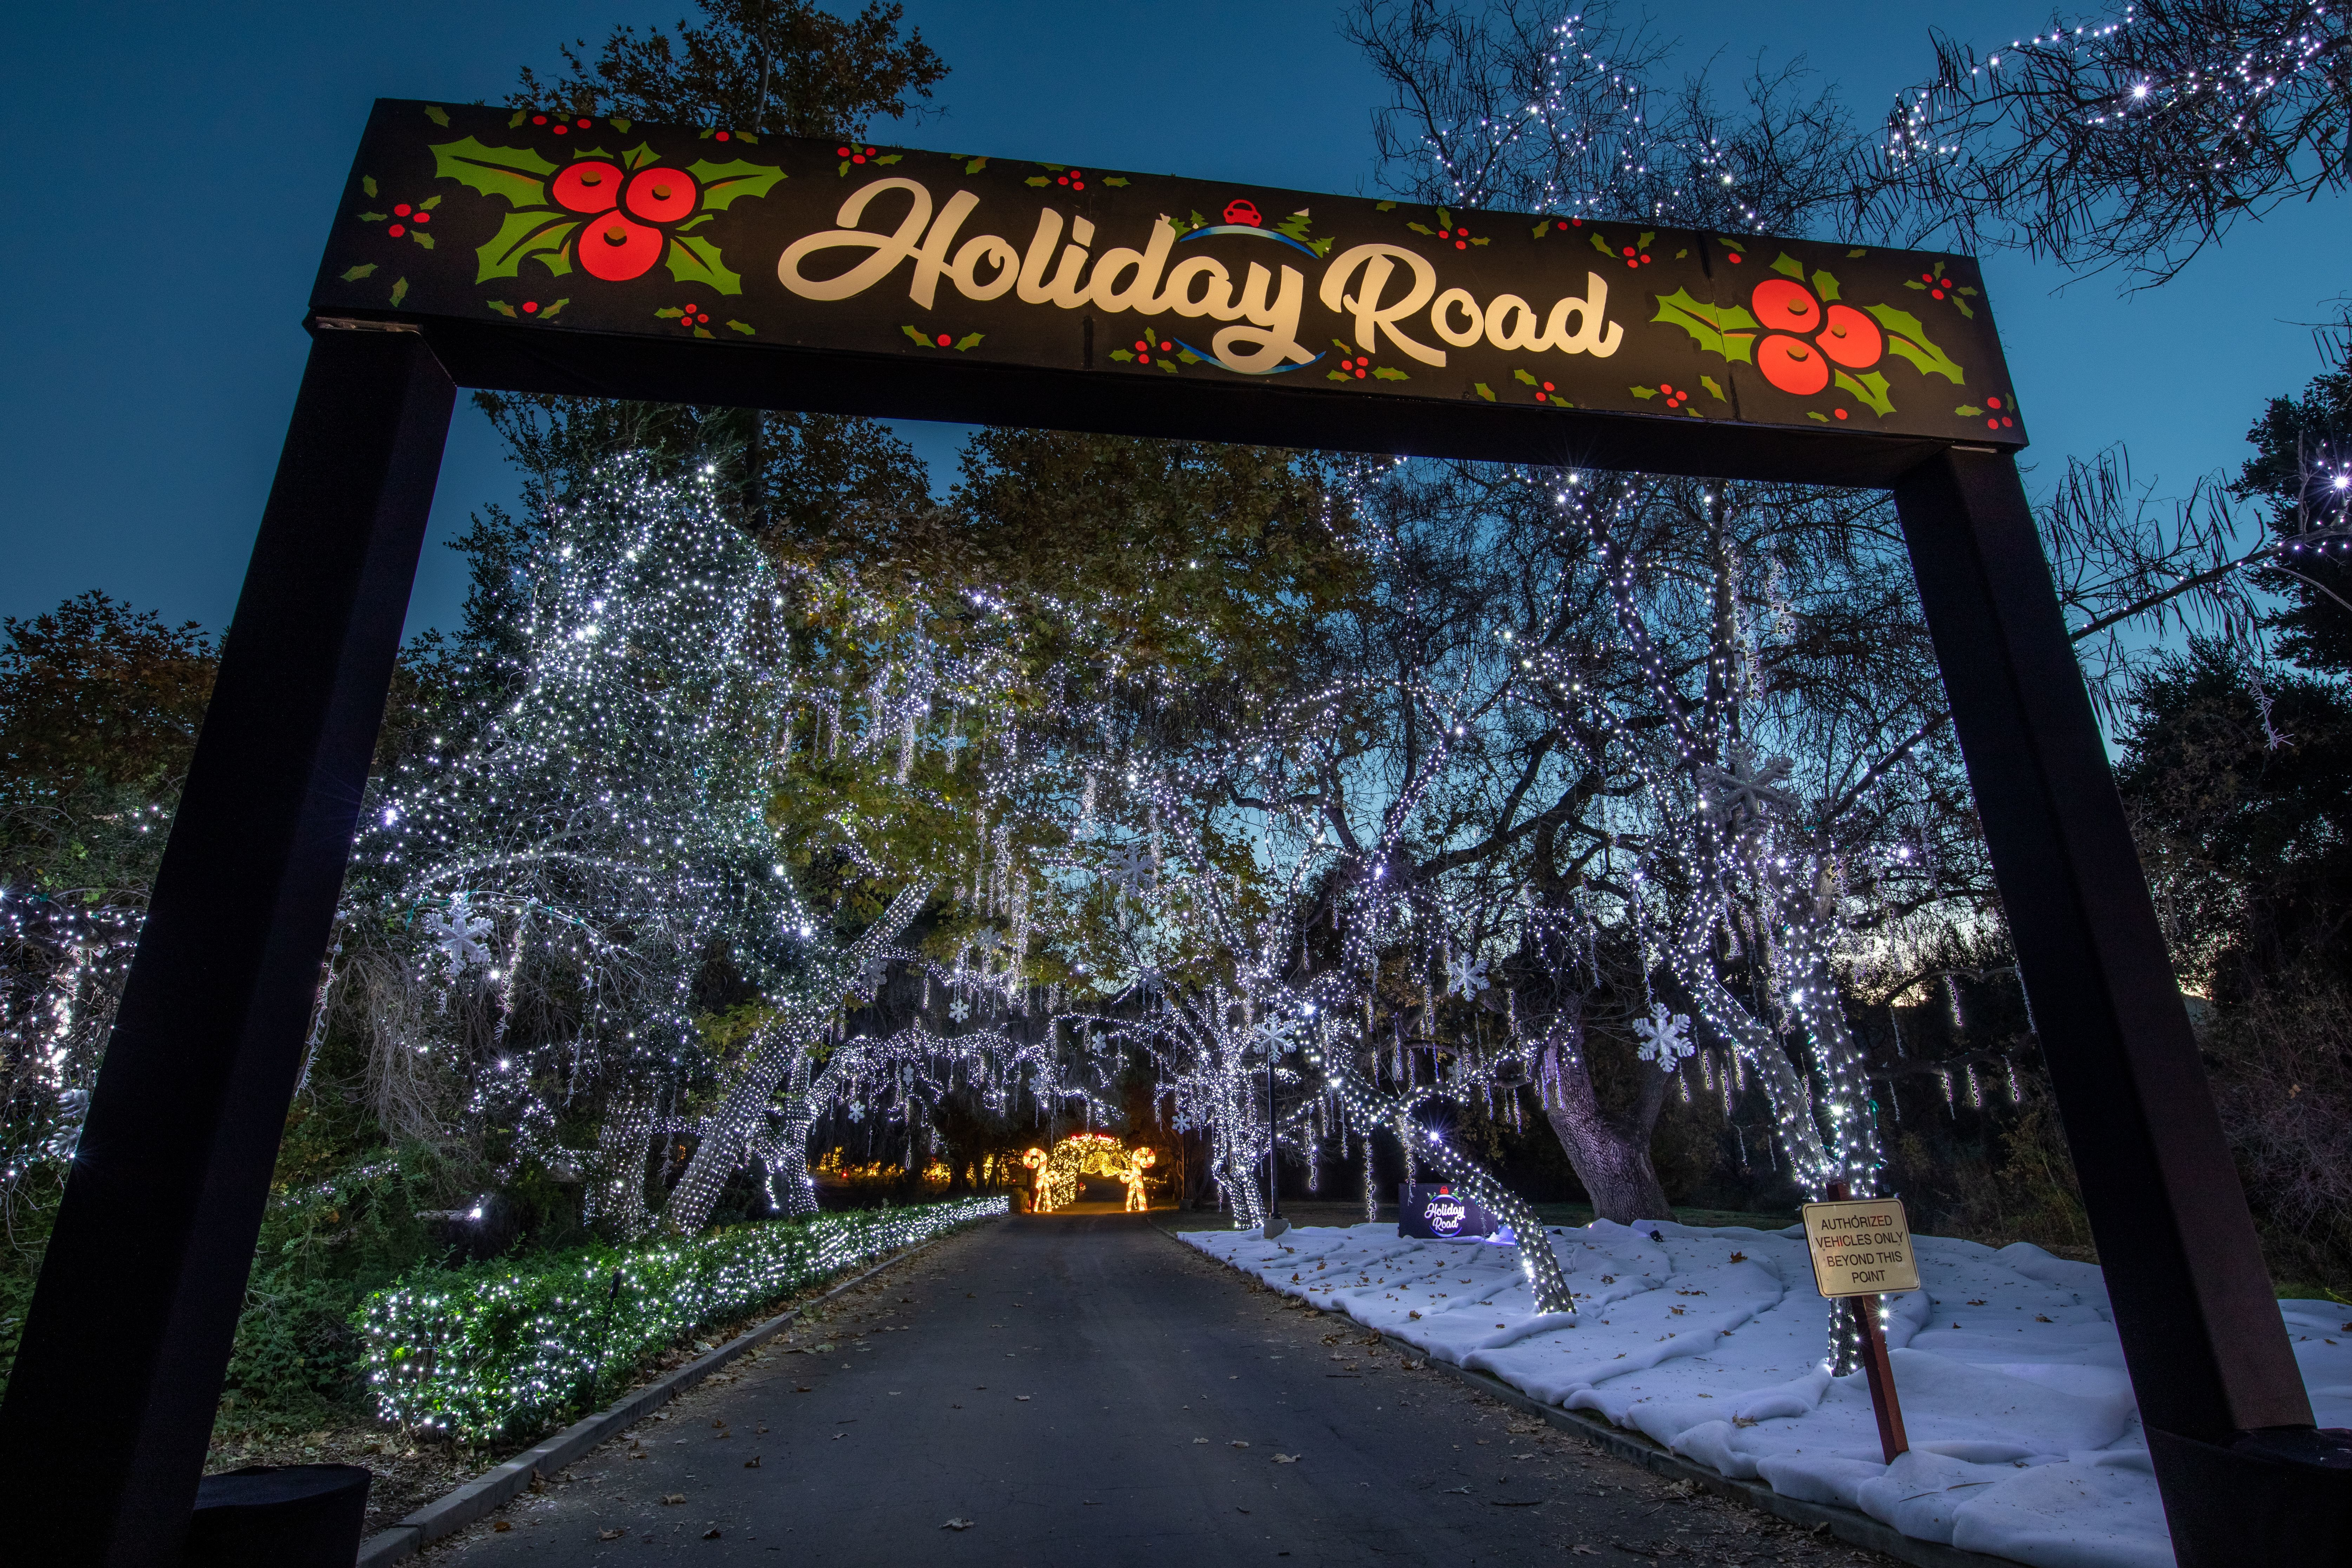 HOLIDAY ROAD WILL ILLUMINATE THE GROUNDS OF MORVEN PARK FOR A SPECTACULAR LIGHT SHOW EVENT DURING THE HOLIDAY SEASON